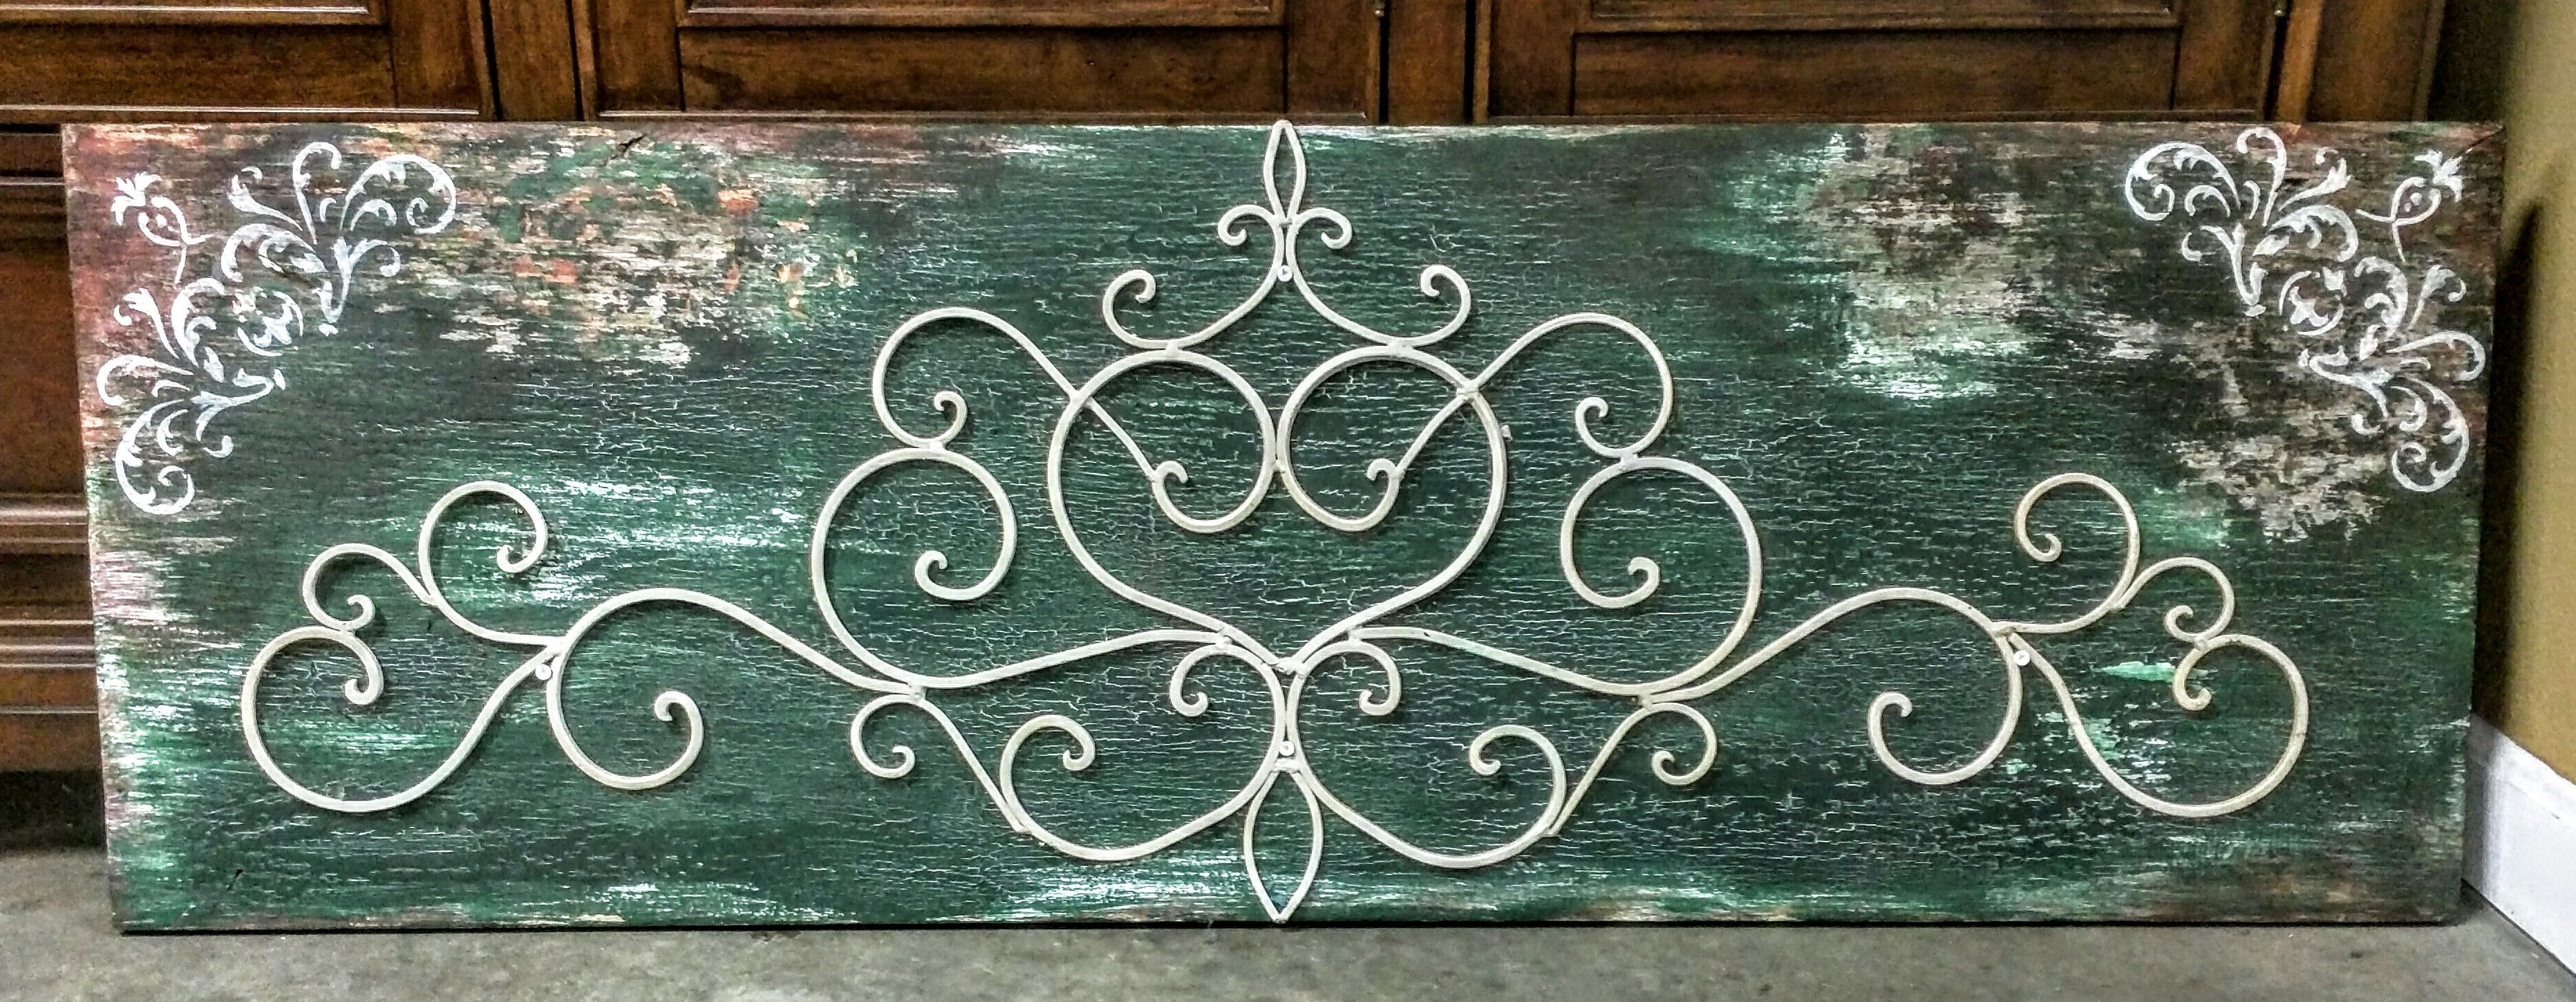 Handmade rustic wood and wrought iron headboard, hunter